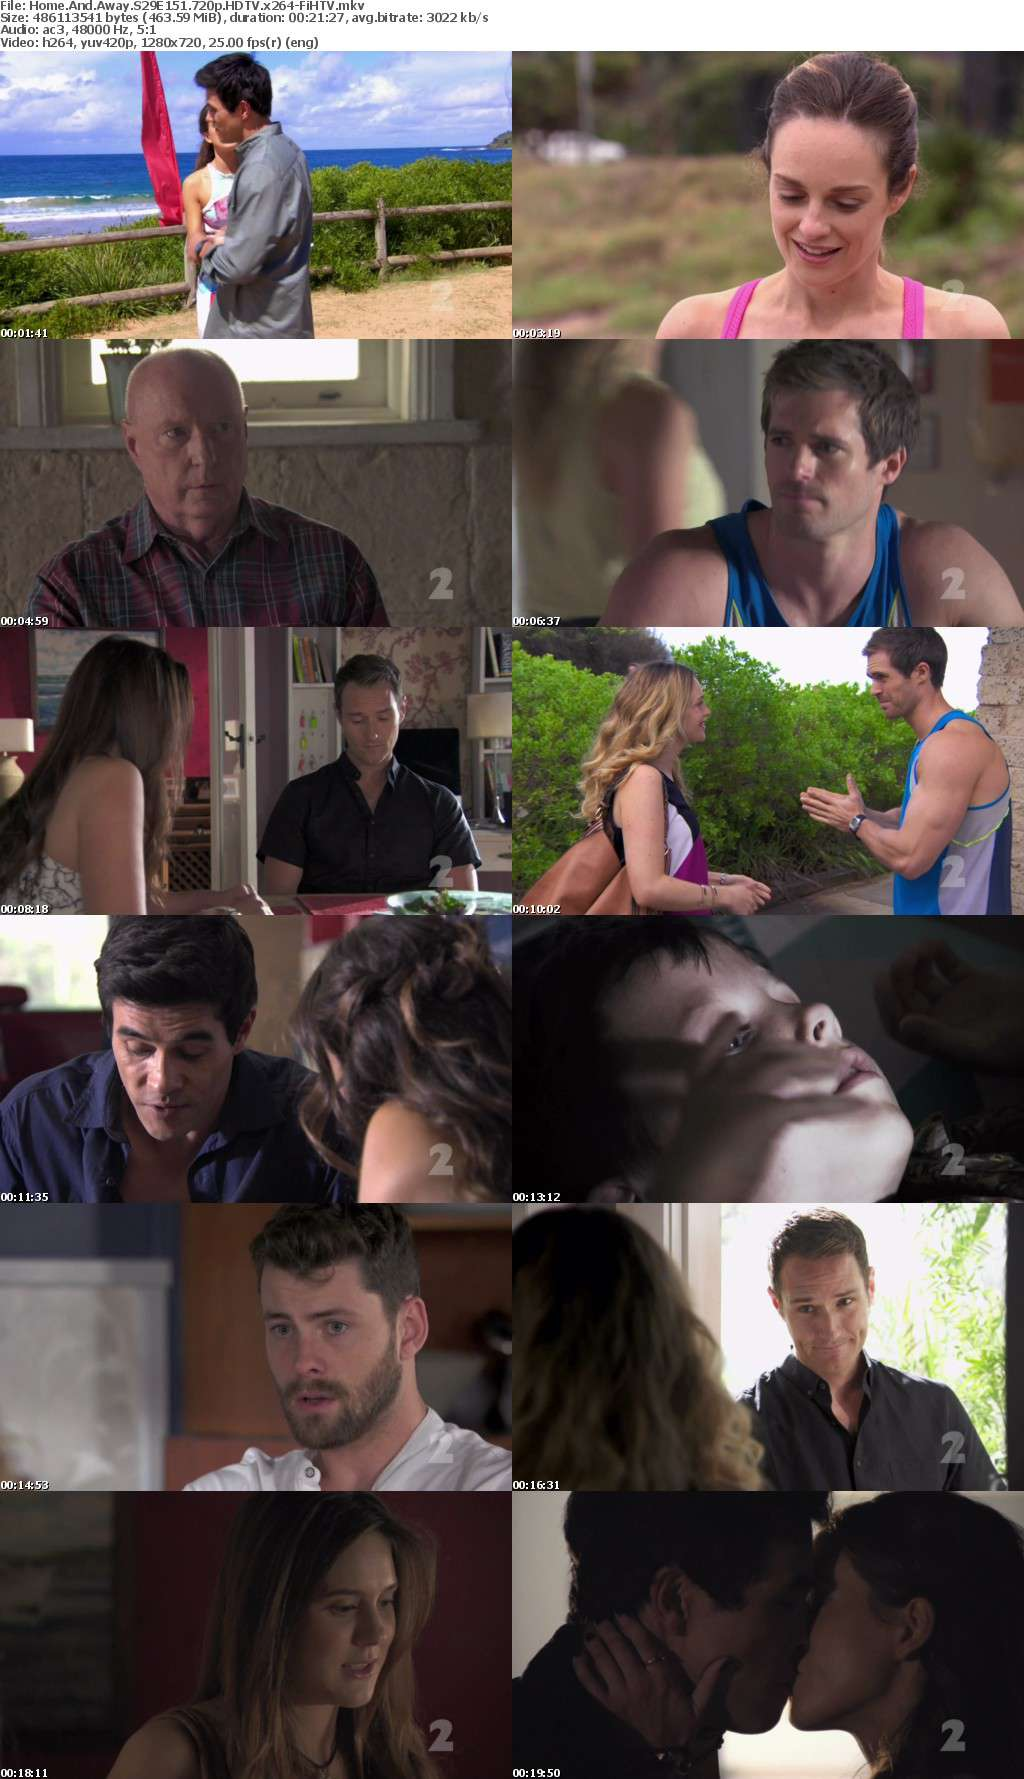 Home And Away S29E151 720p HDTV x264-FiHTV